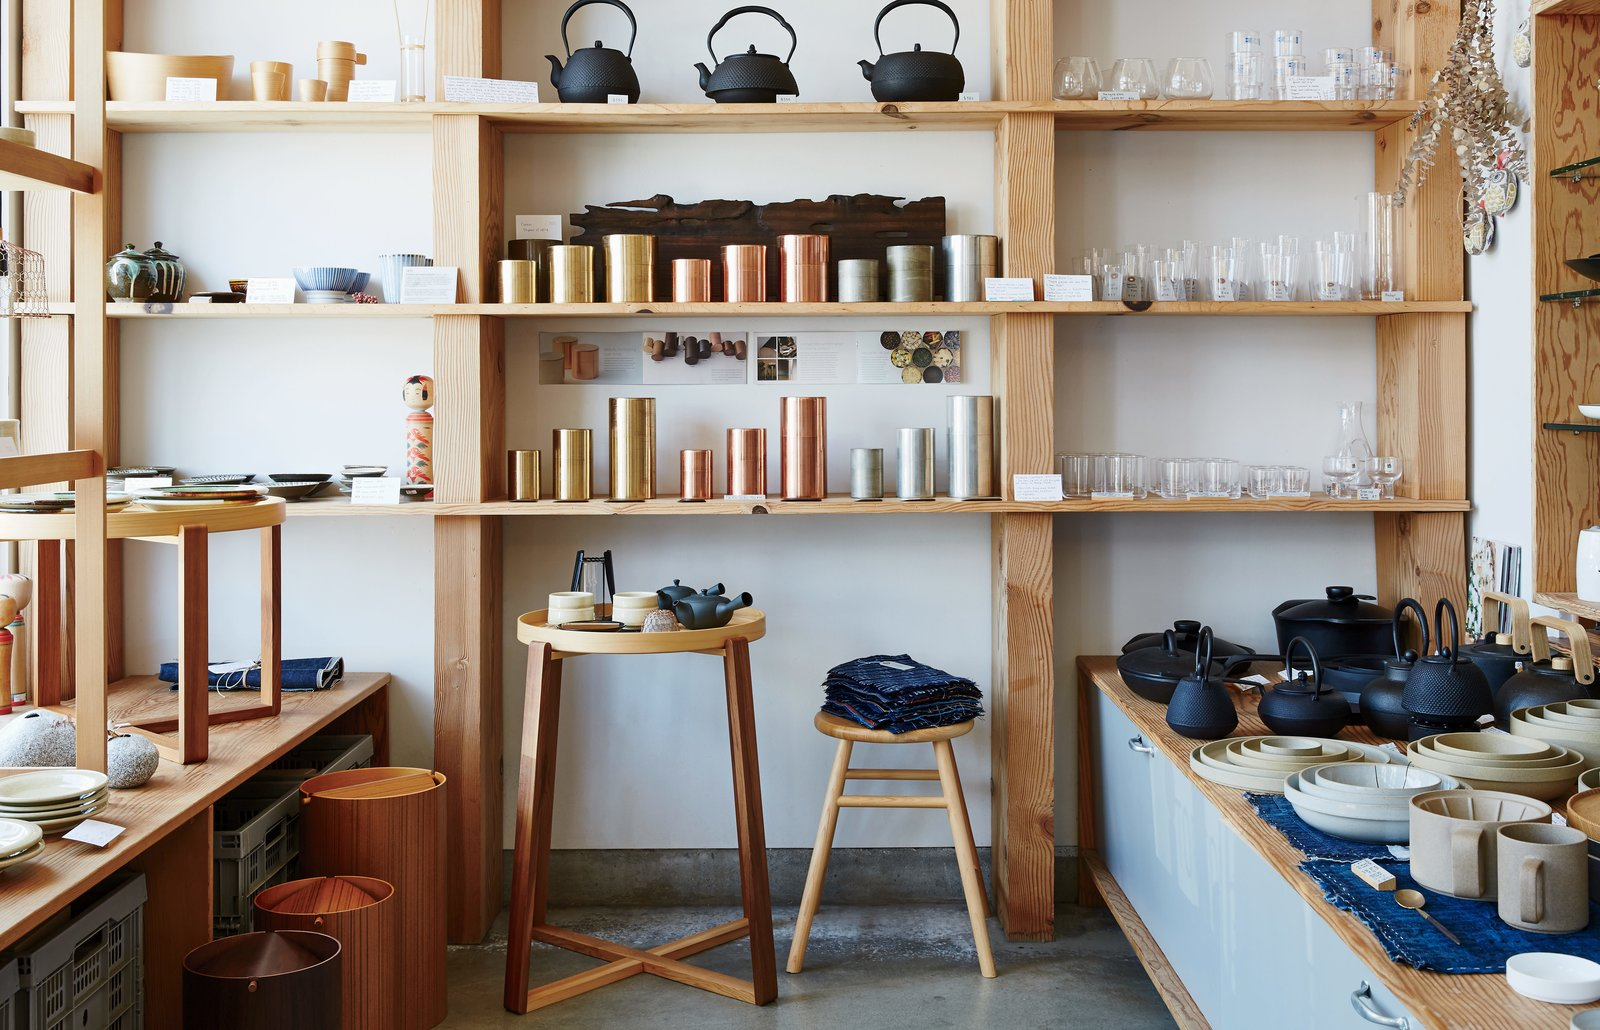 Keiko and Taku Shinomoto have two simple rules for their store: that the items come from Japan and that they have been well made by artisans. Just off busy Abbot Kinney Boulevard in Venice, California, the shop carries homewares such as Kaikado metal tea canisters.  Photo 1 of 6 in A Cute Mom-and-Pop Shop in L.A. Showcases the Latest Japanese Design